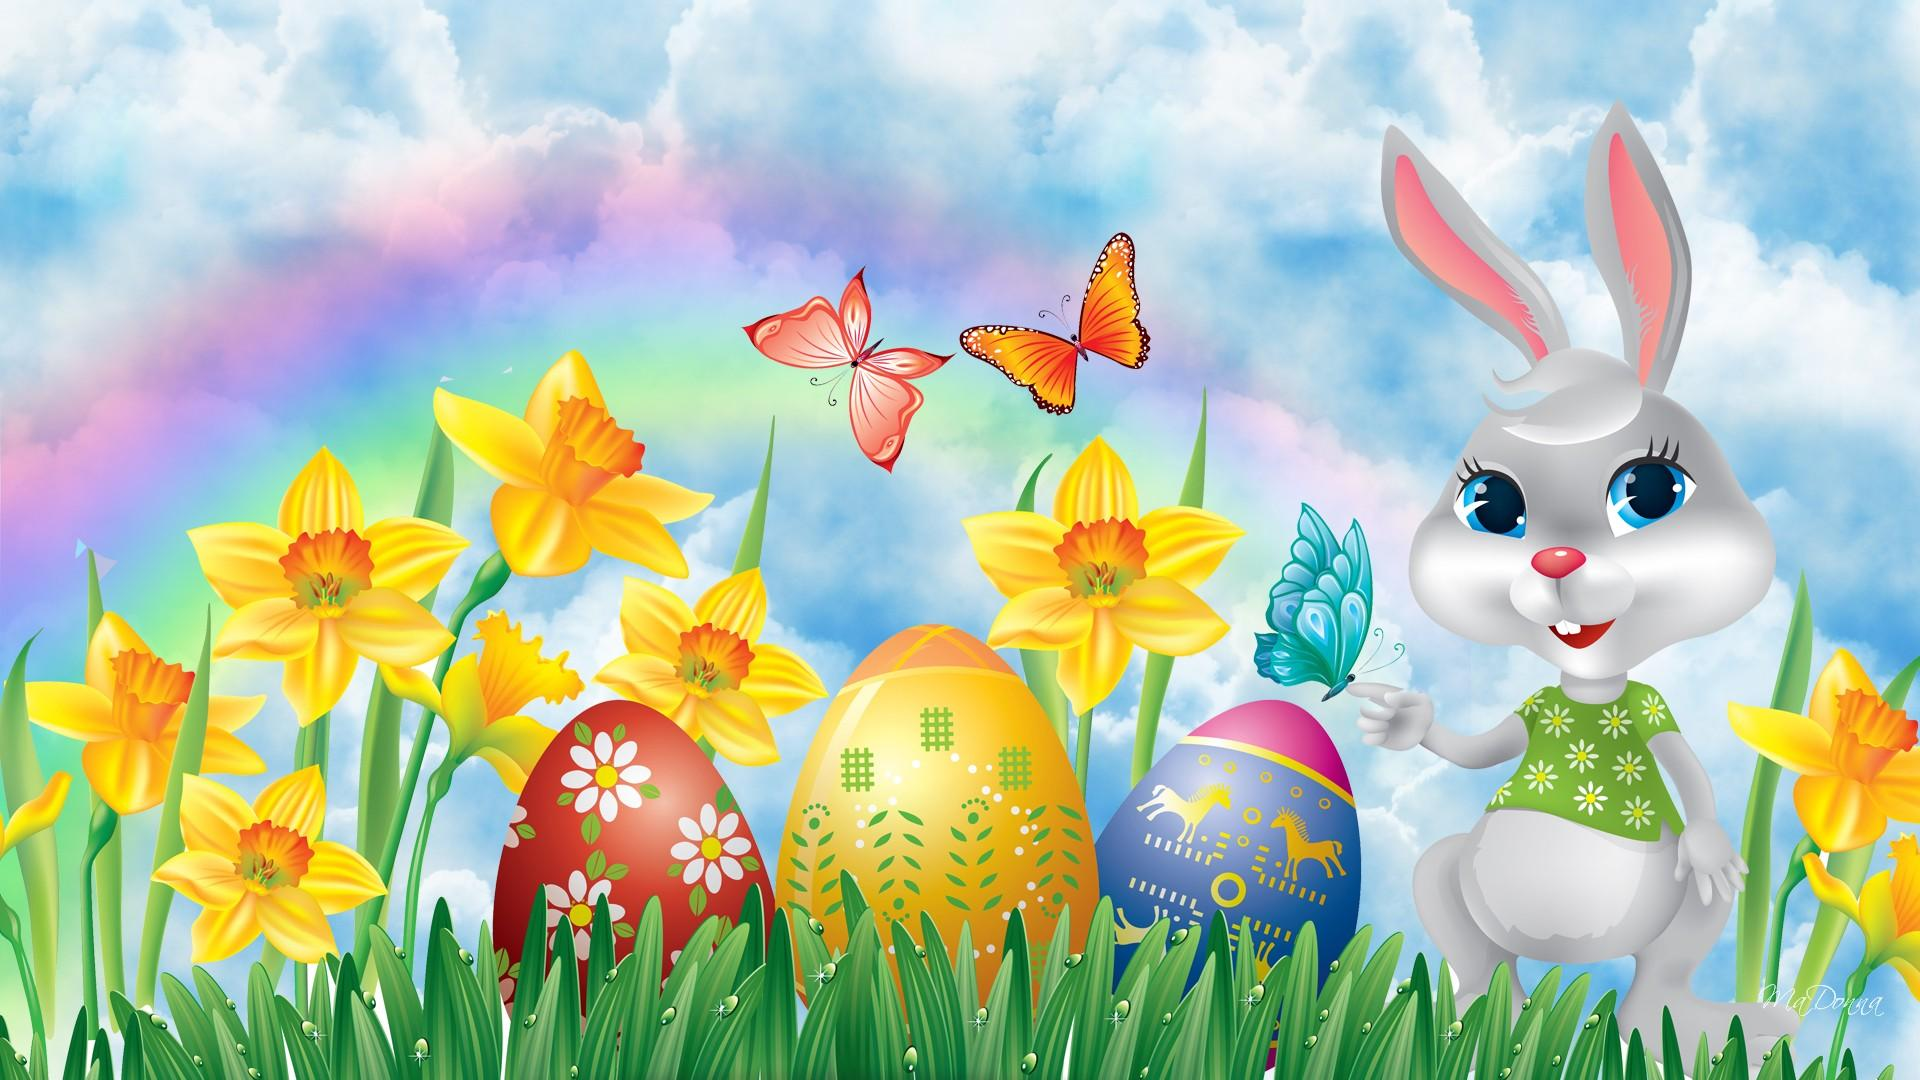 easter wallpapers hd - photo #14